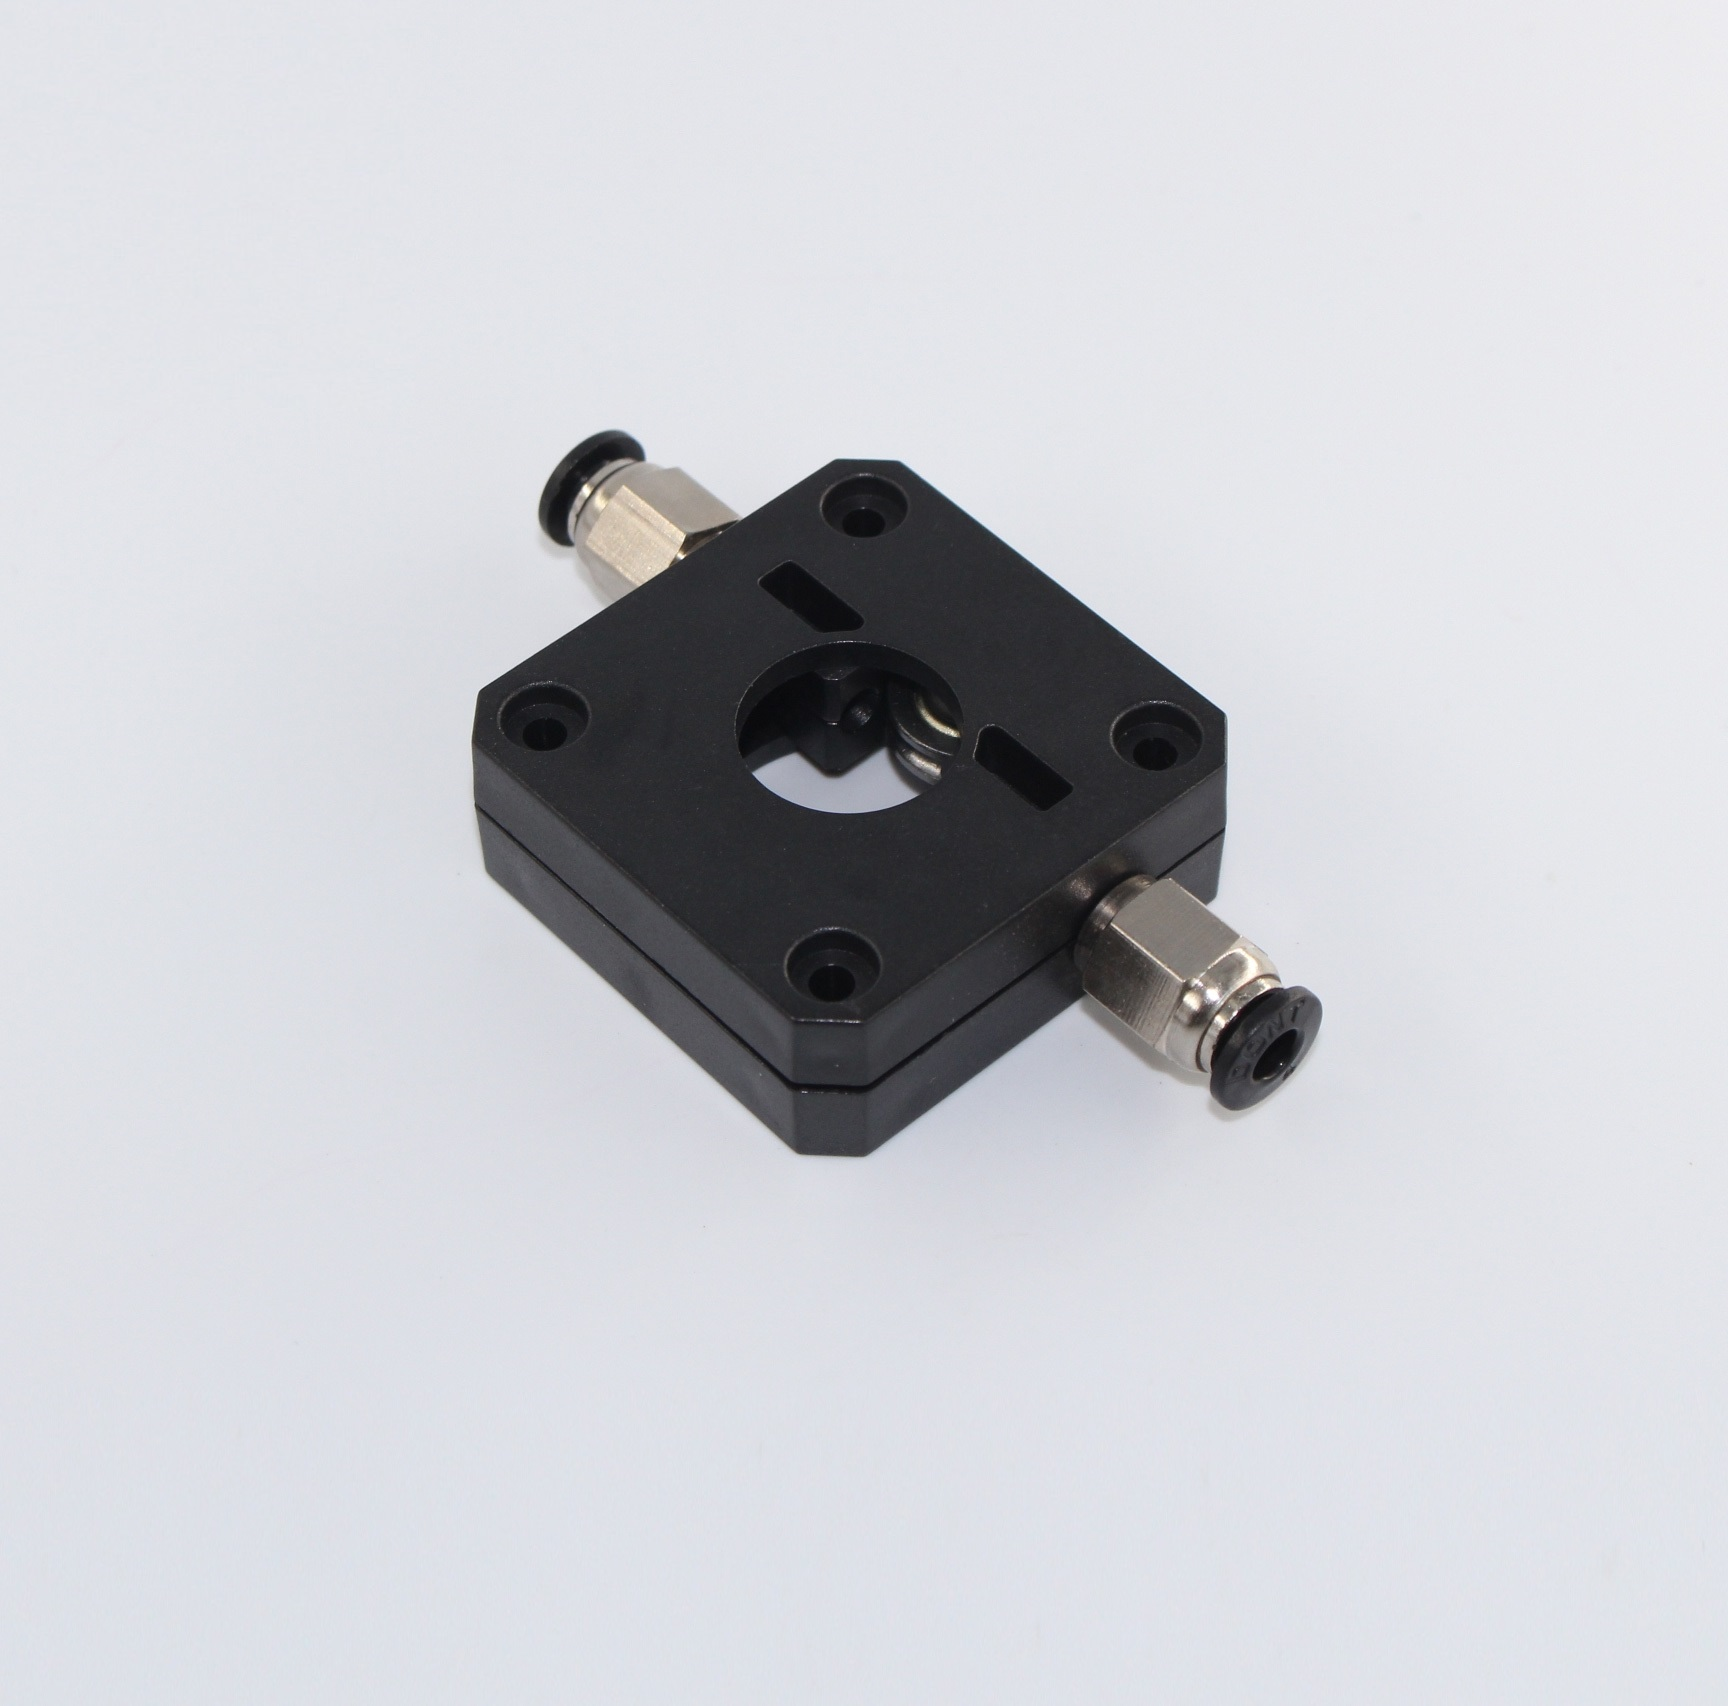 Makerbot Feed Extruder Proximity Range 1.75mm.